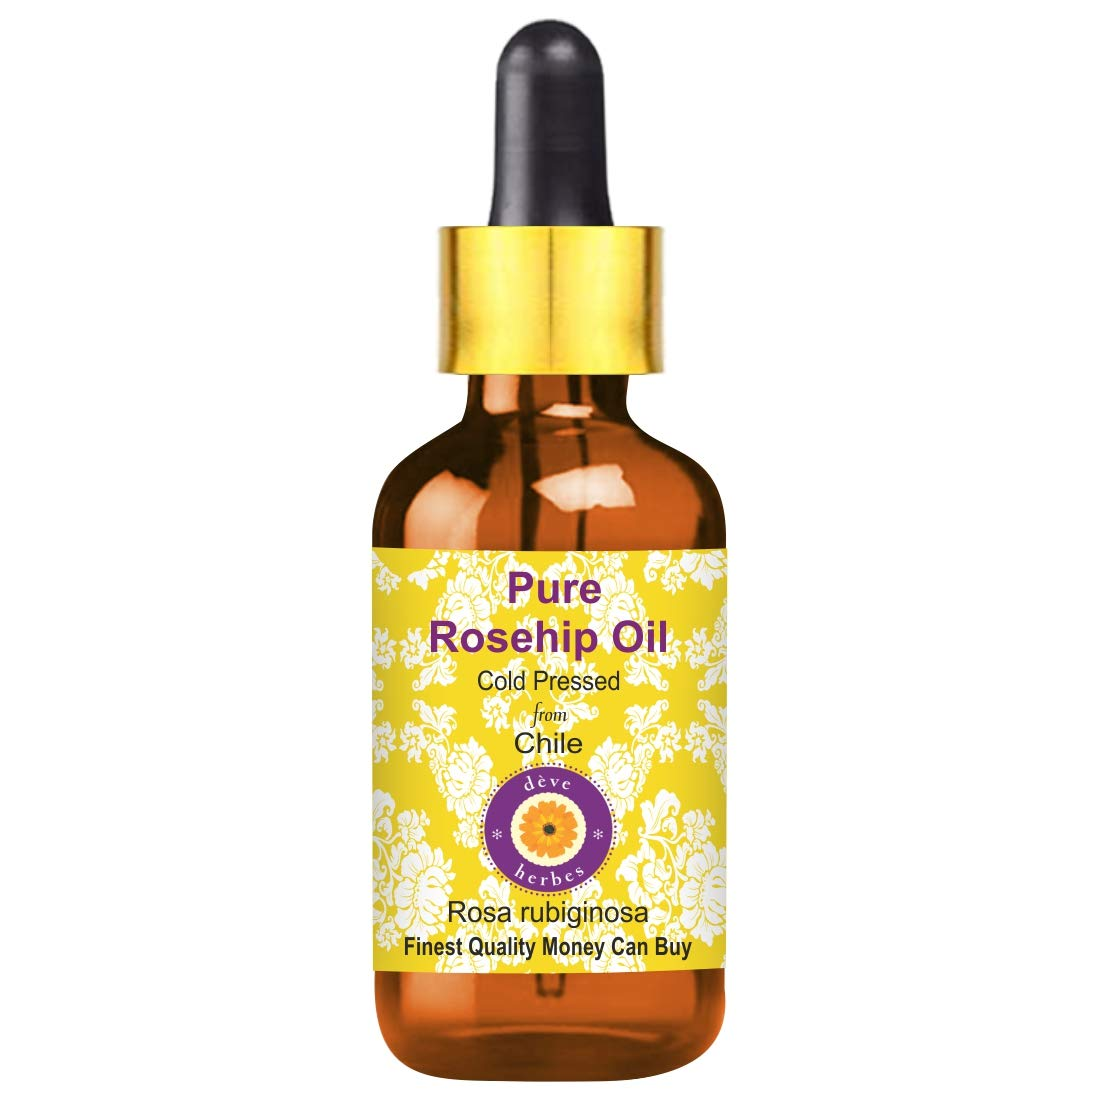 Deve Herbes Pure Rosehip Oil (Rosa rubiginosa) with Glass Dropper 100% Natural Therapeutic Grade Cold Pressed 10ml